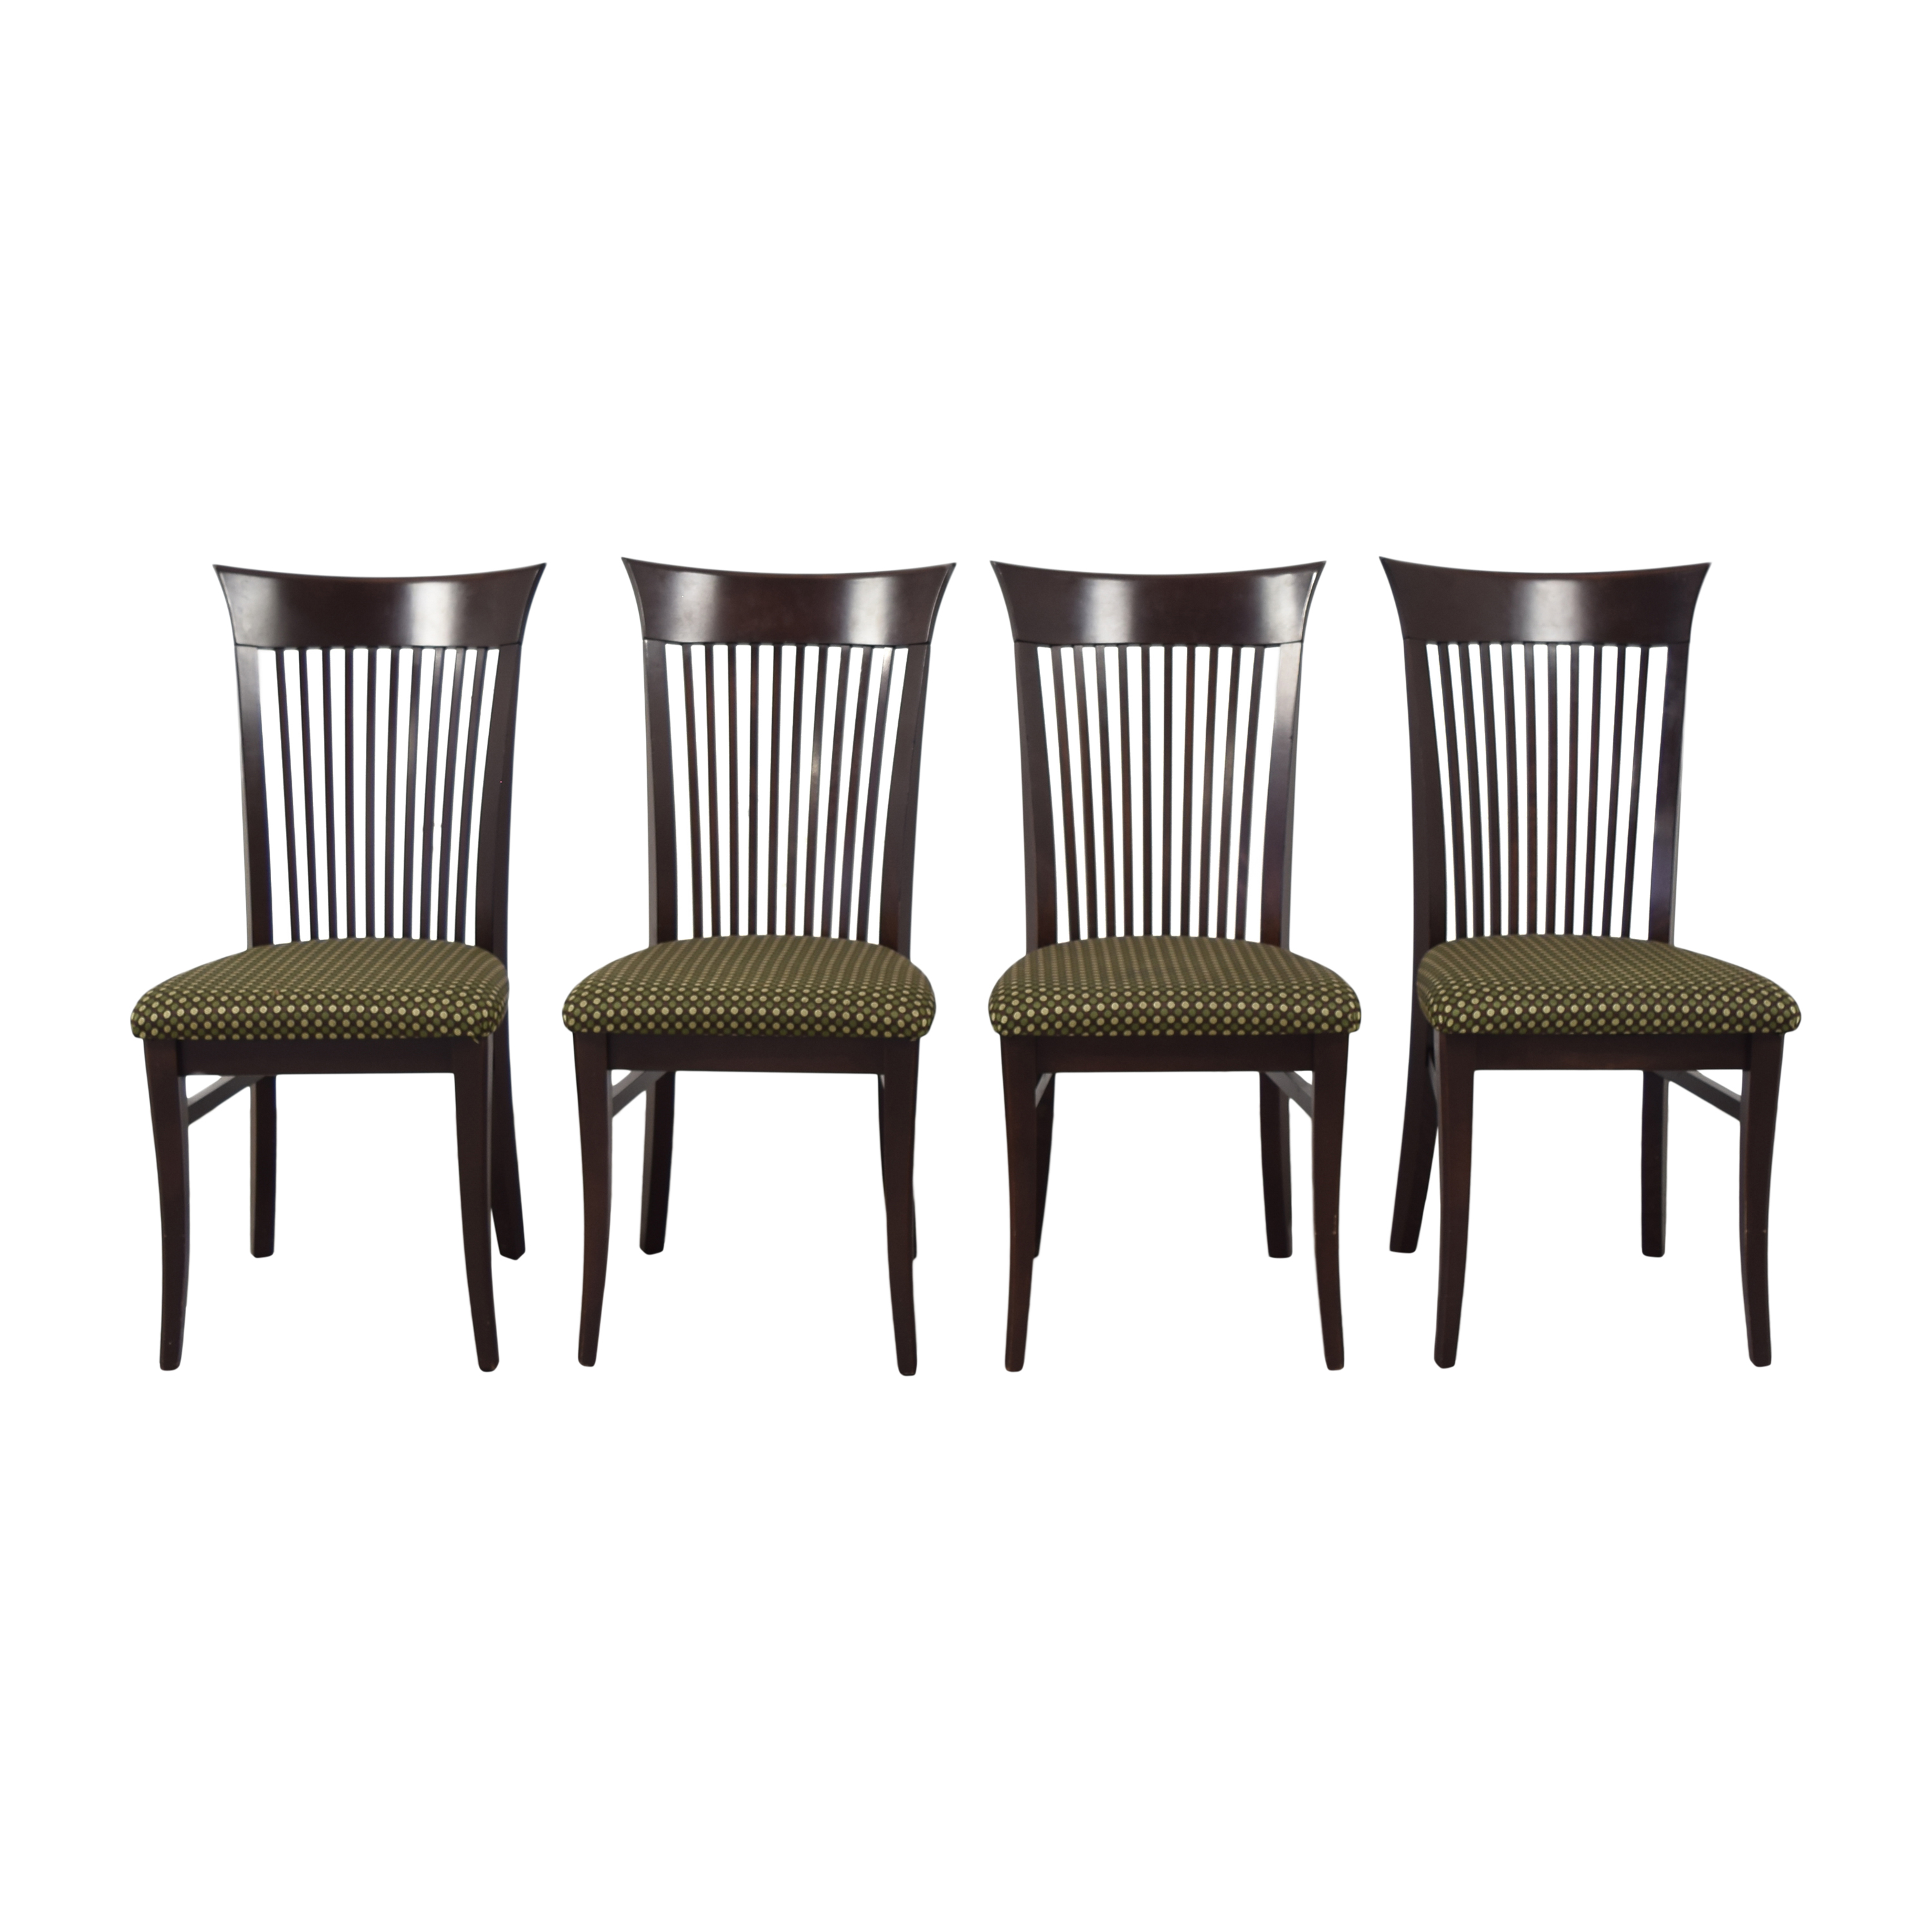 Thomasville Thomasville Upholstered Dining Side Chairs ct